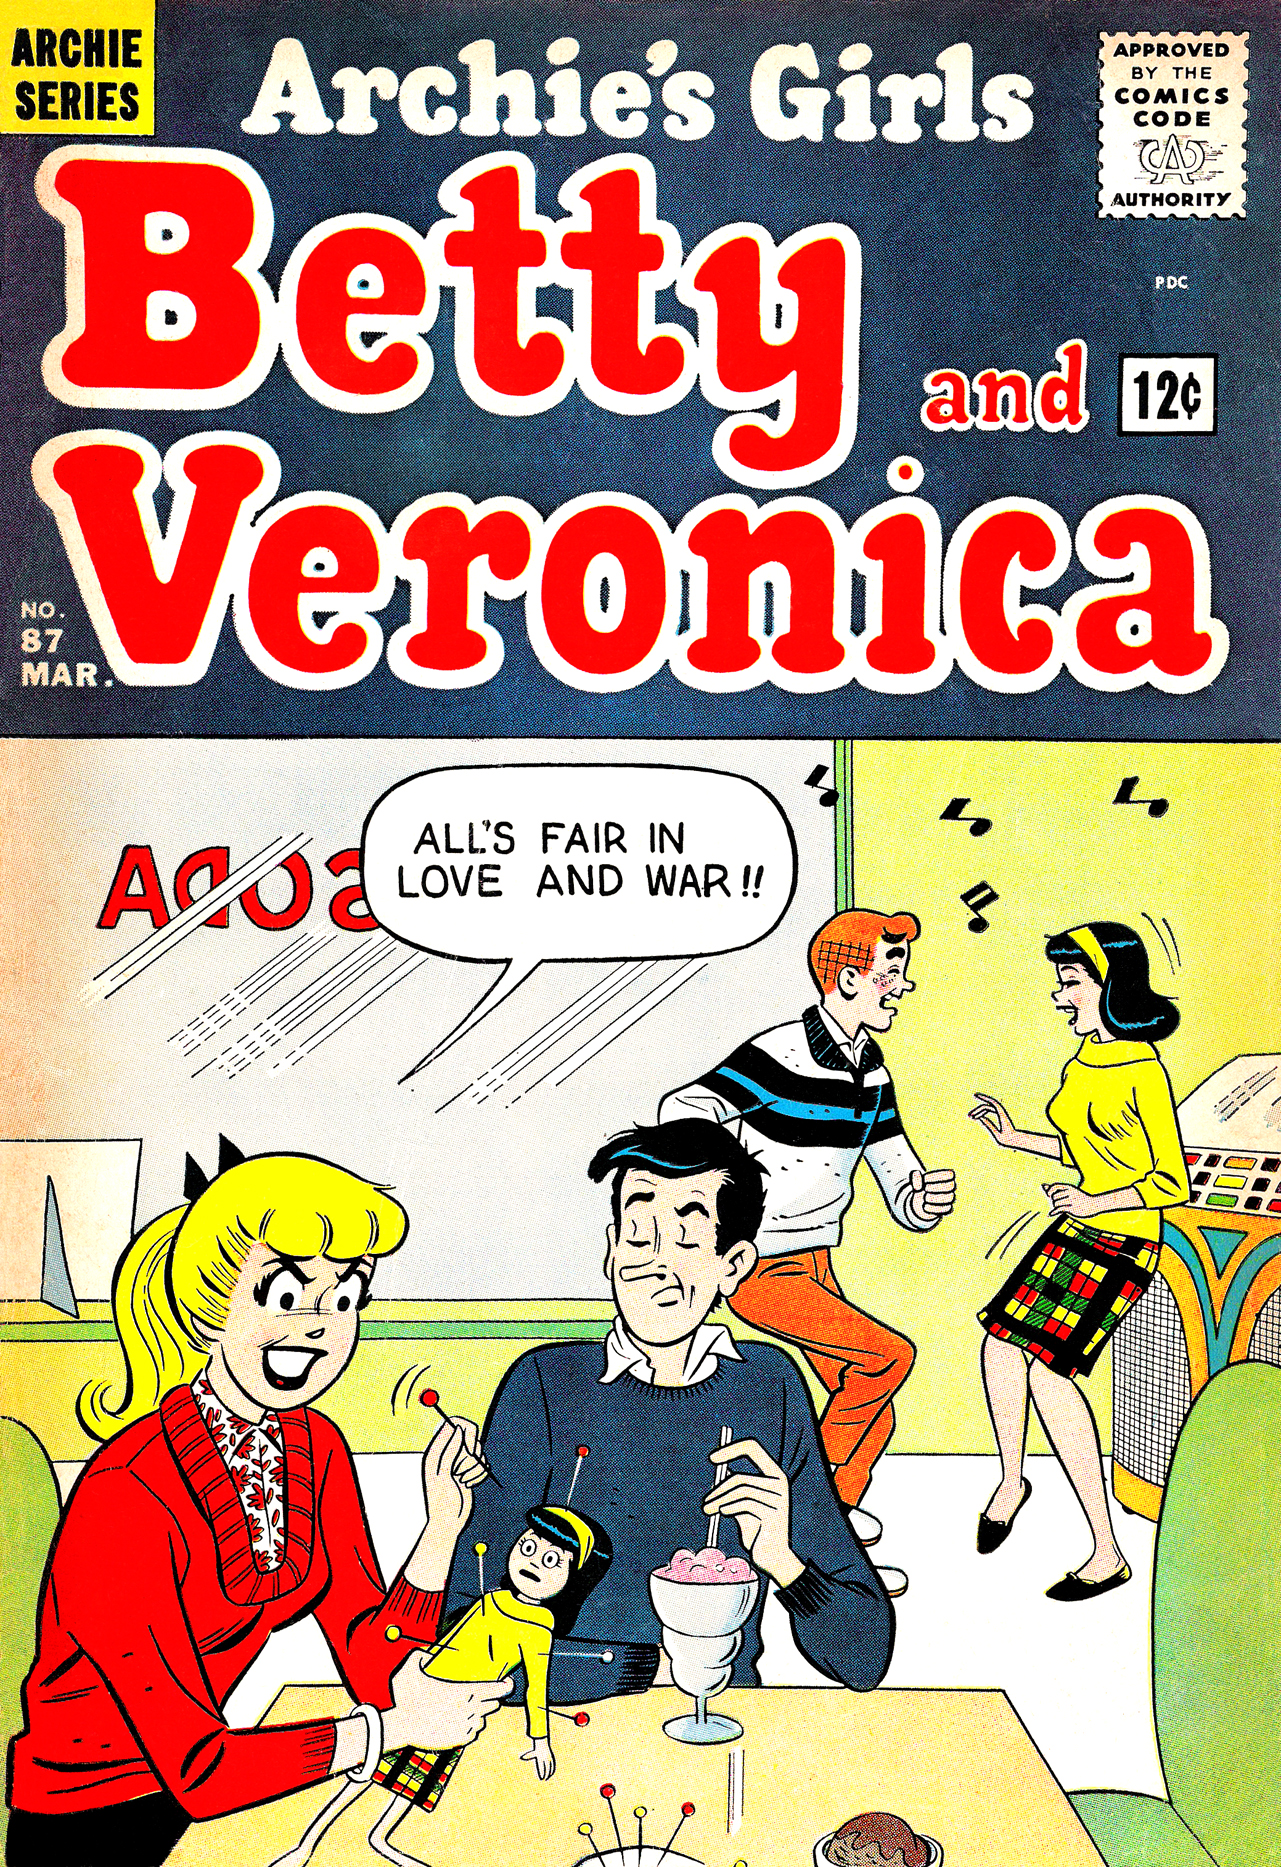 Read online Archie's Girls Betty and Veronica comic -  Issue #87 - 1